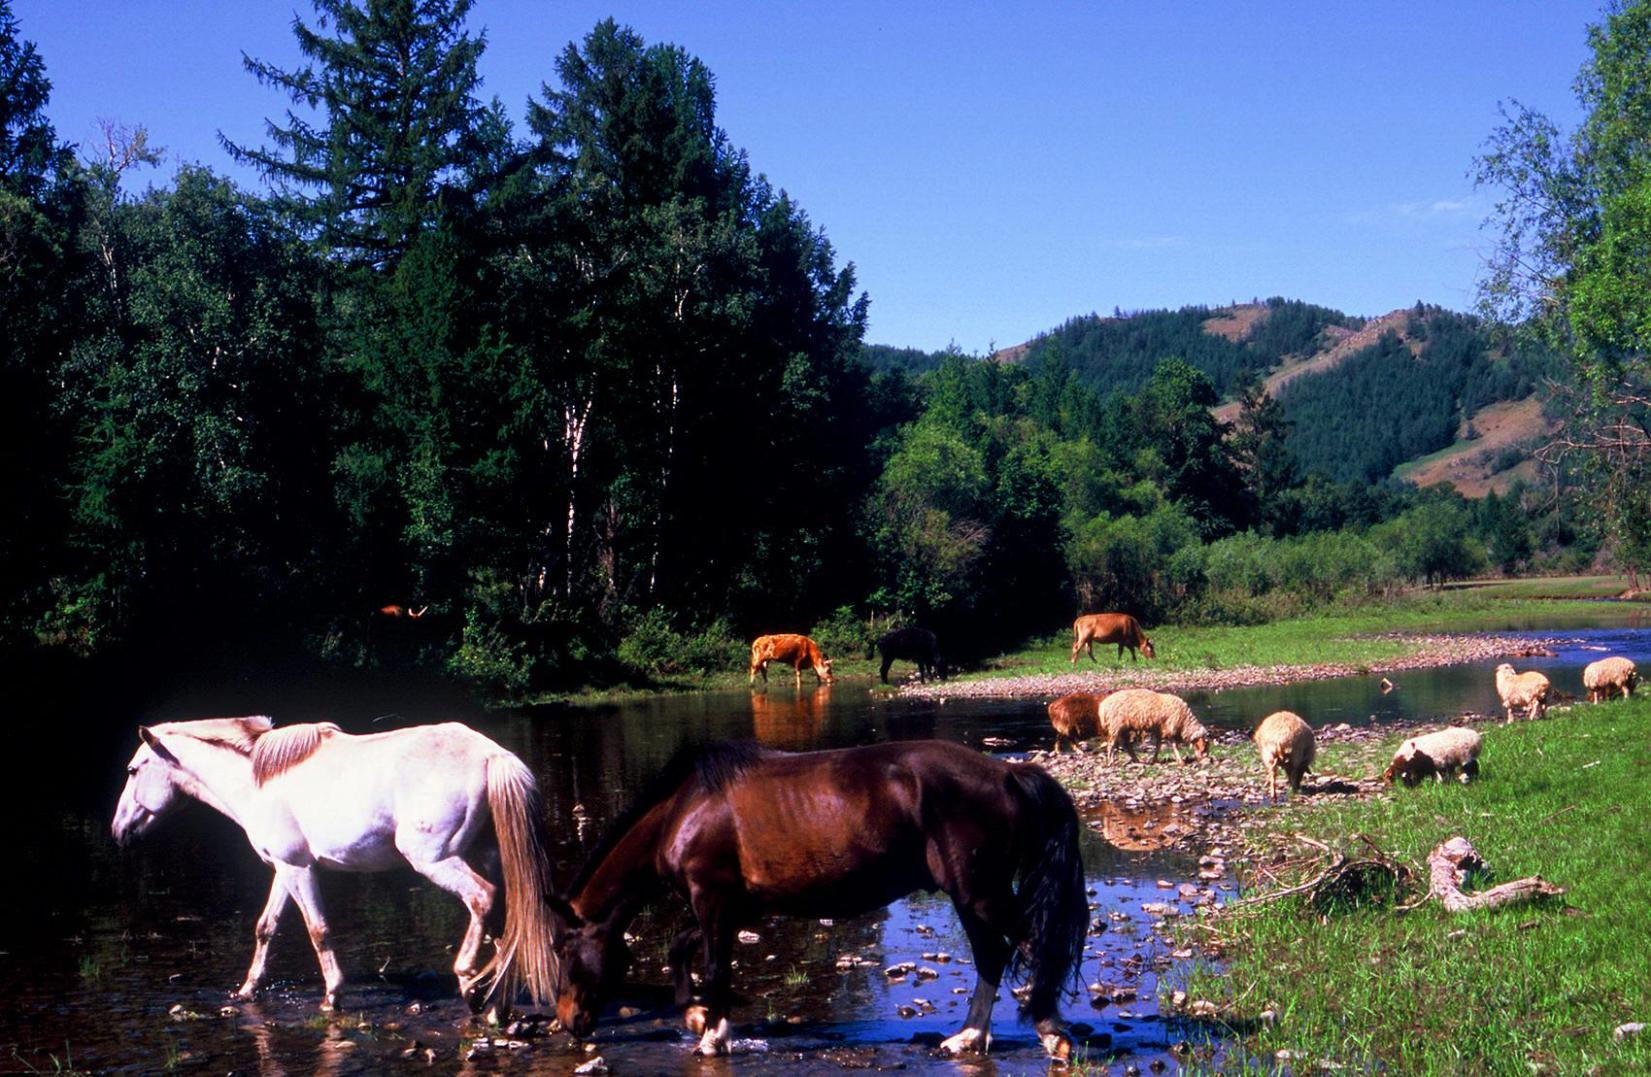 Horses drink water and eat grass. That's ecologically-sound transport.